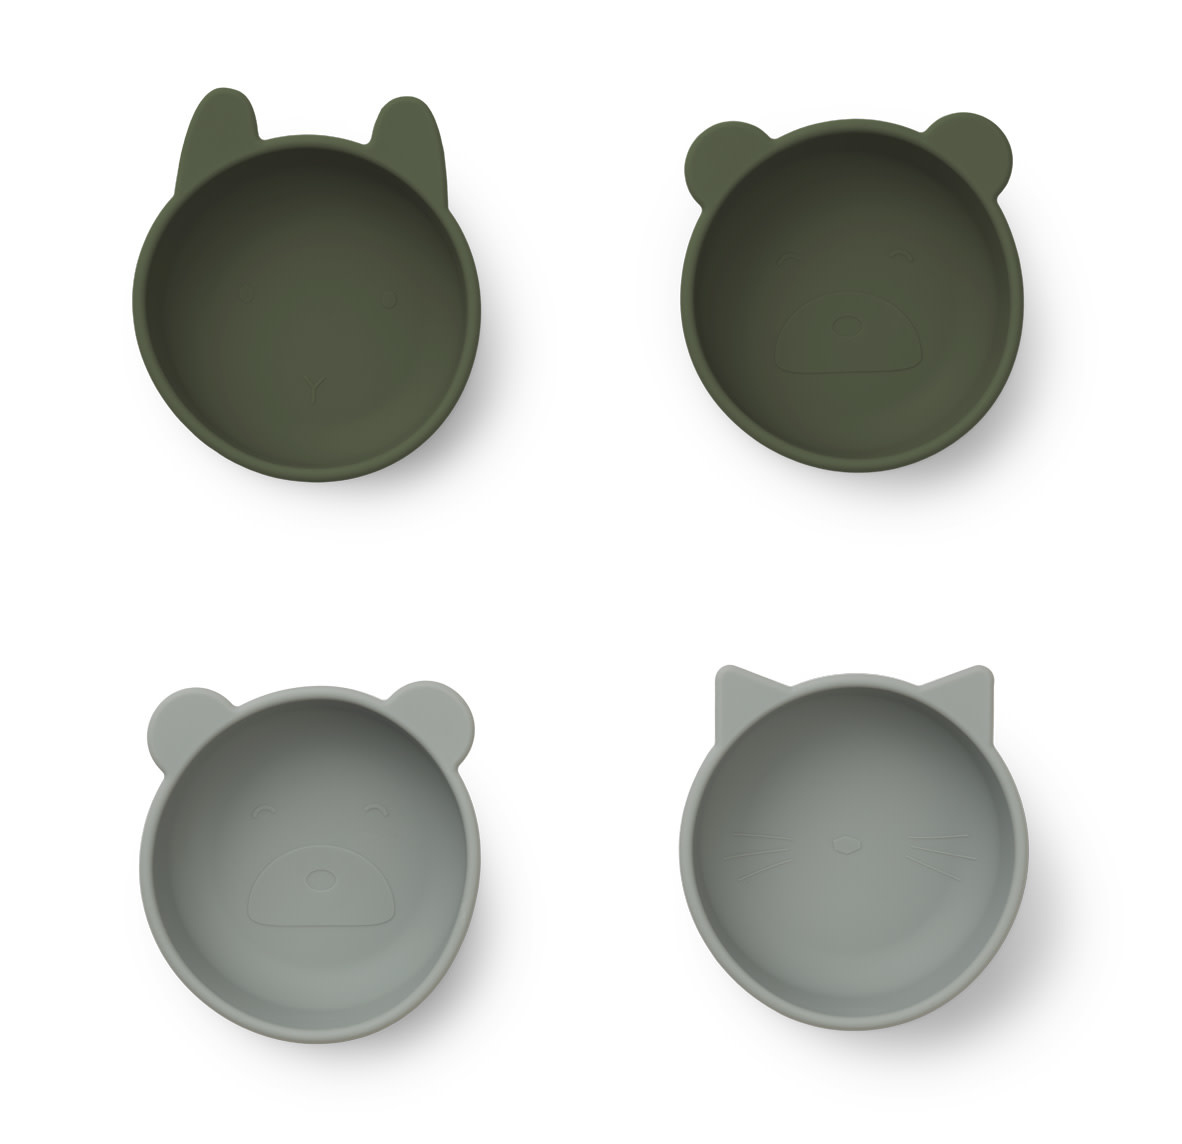 Iggy silicone bowls hunter green mix - 4 pack-1